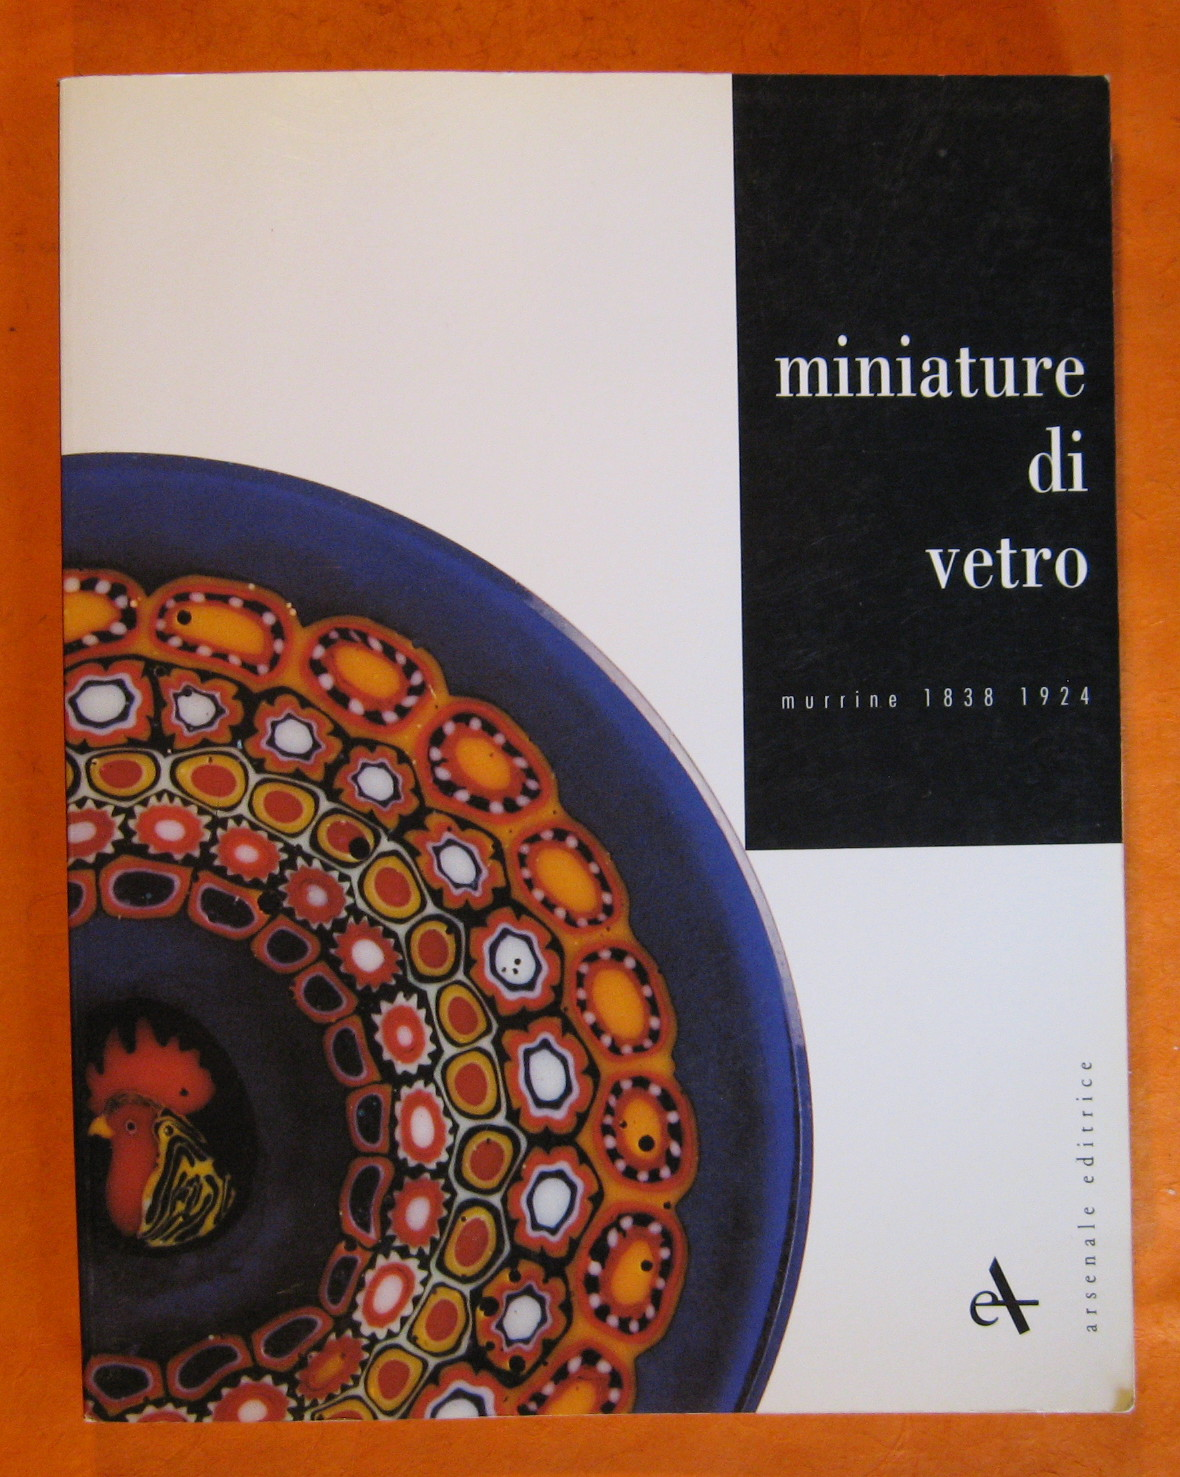 Miniature di vetro: Murrine 1838-1924 (Italian Edition), Sarpellon, Giovanni